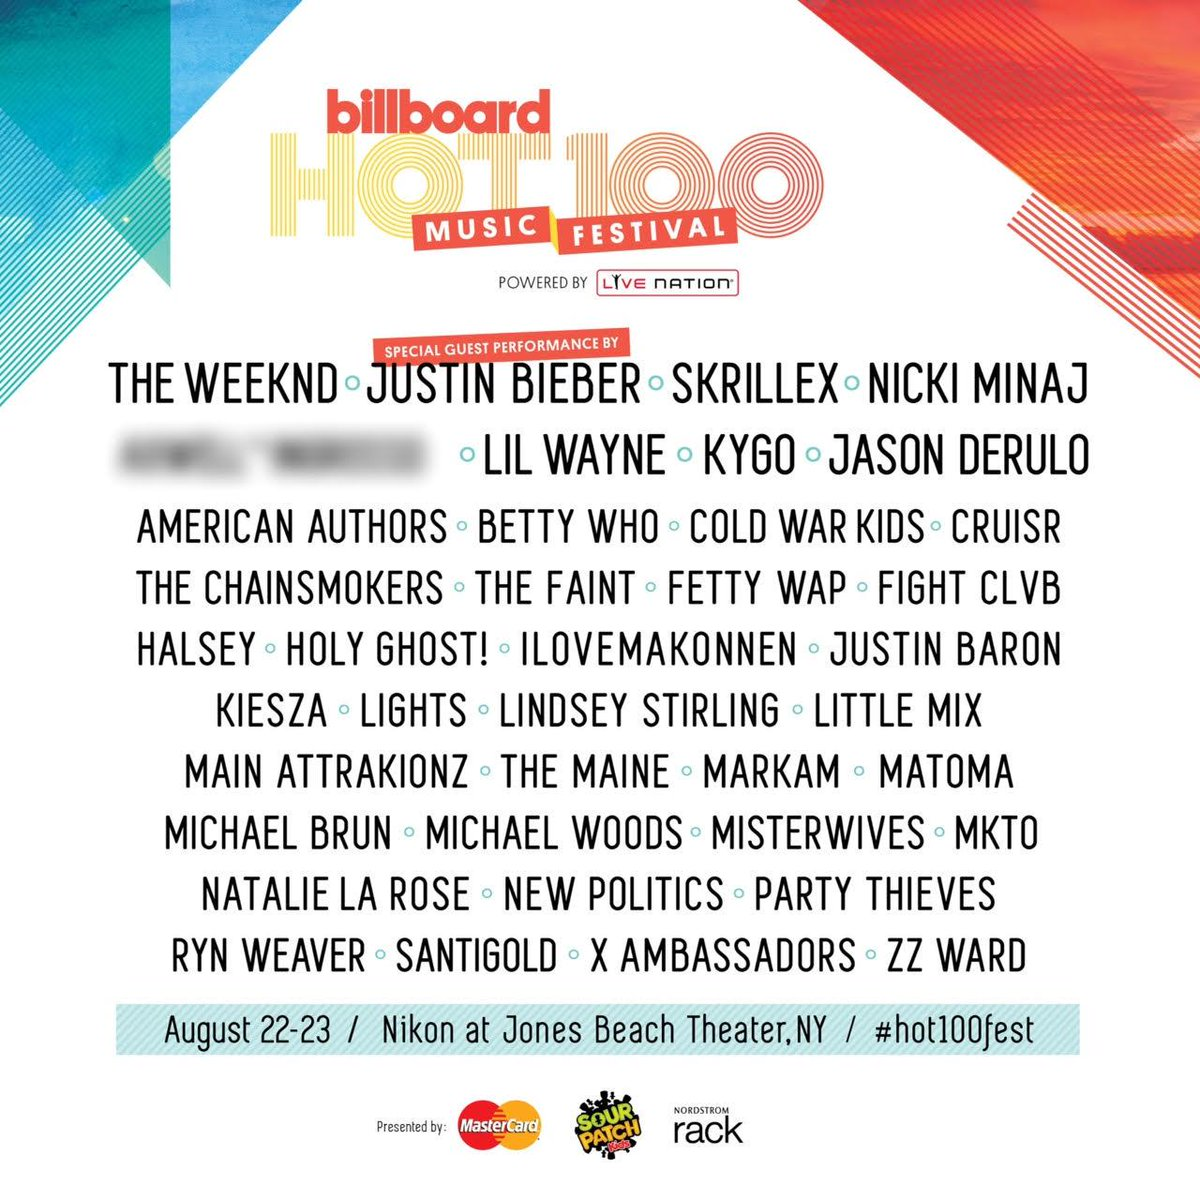 Honored to be playing with some of the biggest names in music at @Billboard's Hot 100 Festival. See you in New York! http://t.co/9CTTIo7kz1